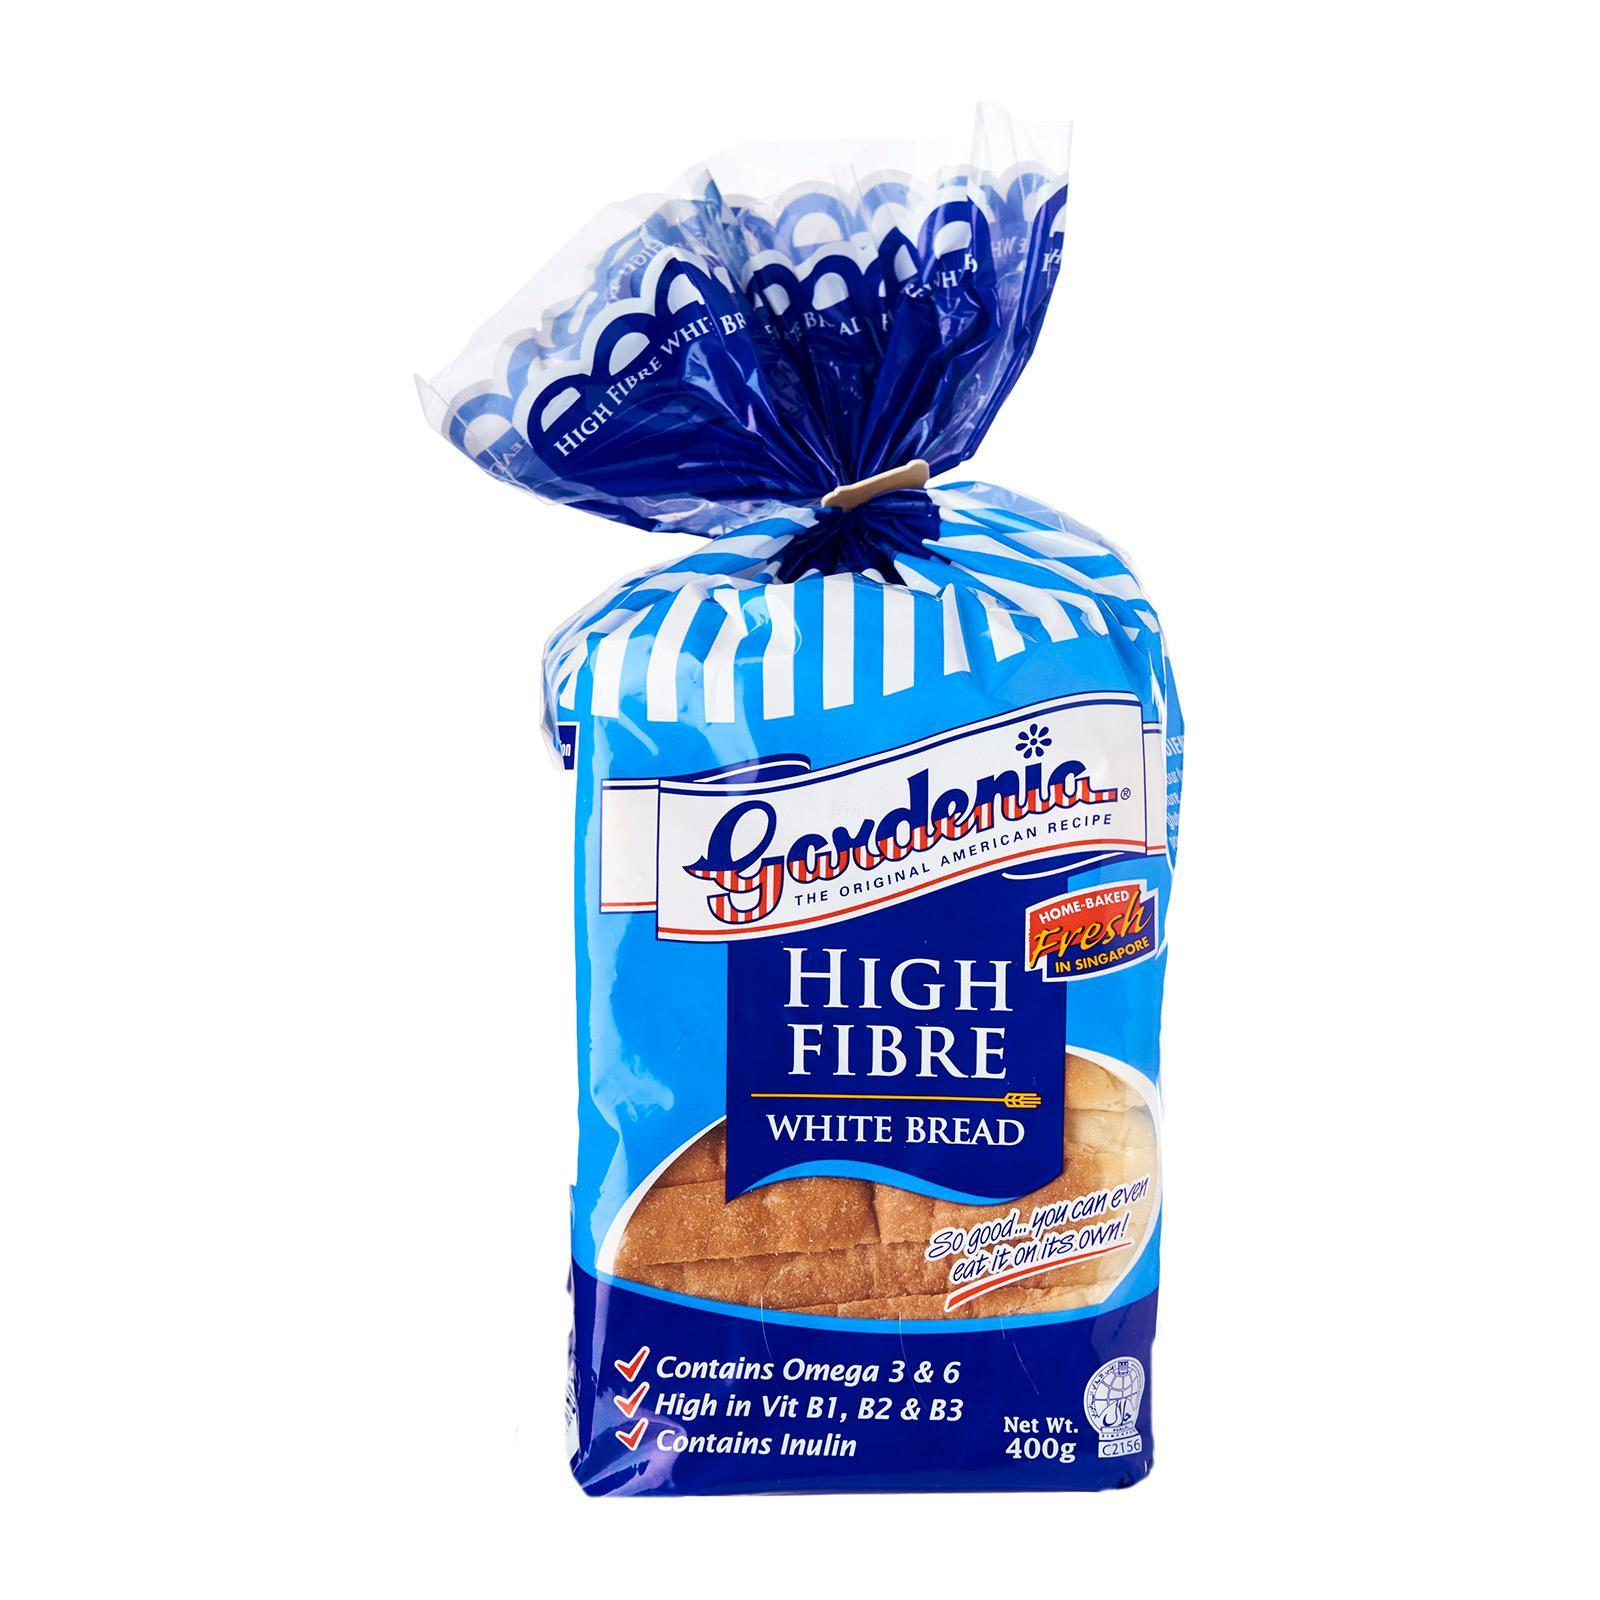 Gardenia Hi-Fibre White Bread By Redmart.